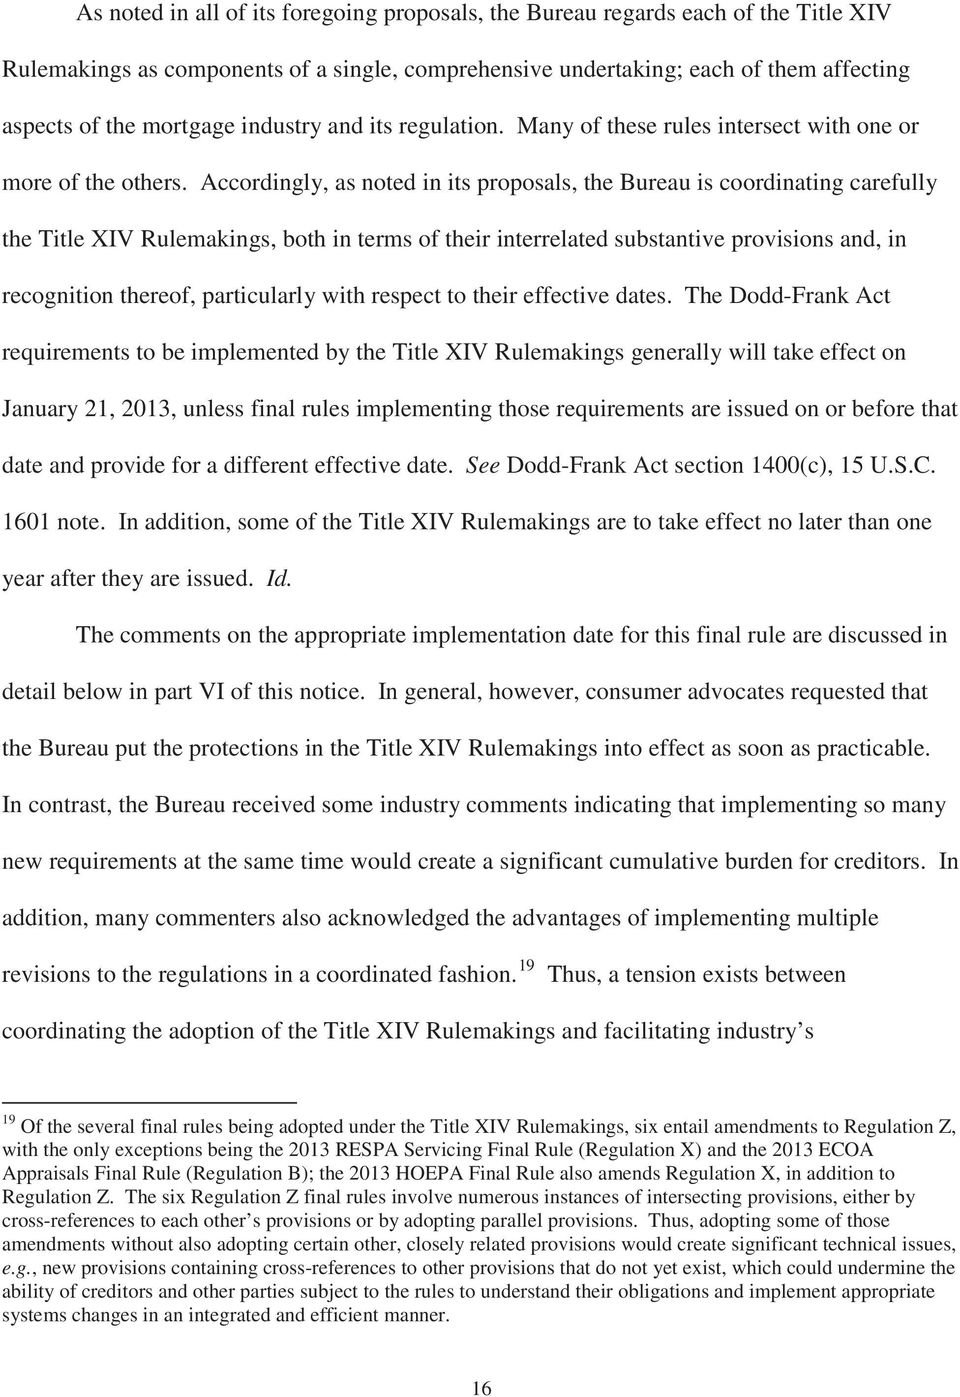 Accordingly, as noted in its proposals, the Bureau is coordinating carefully the Title XIV Rulemakings, both in terms of their interrelated substantive provisions and, in recognition thereof,